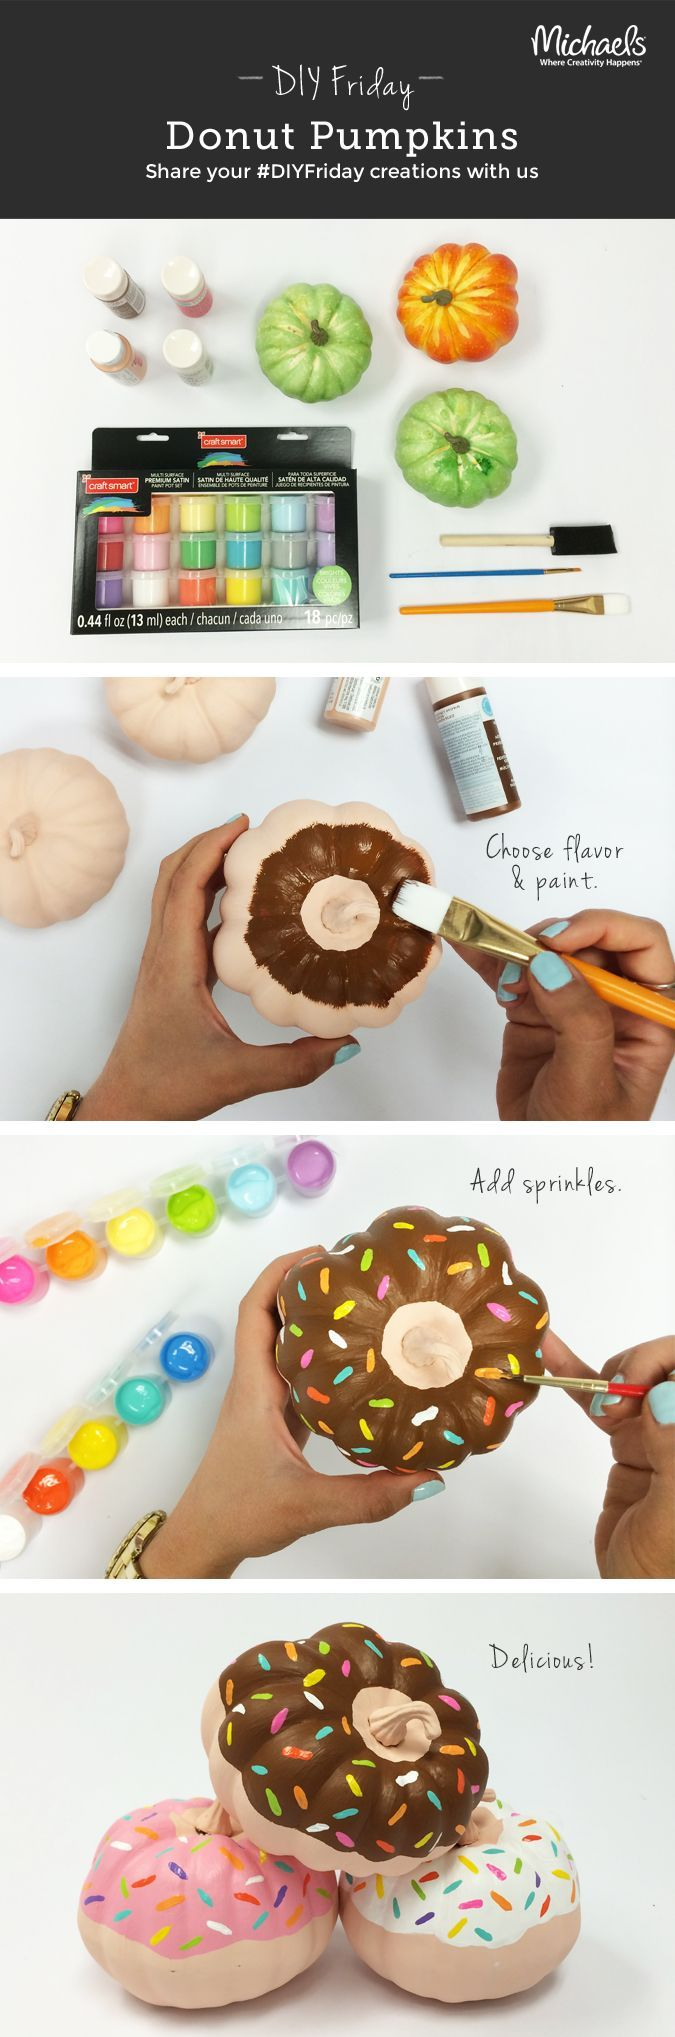 DIY Painted Donut Mini Pumpkins